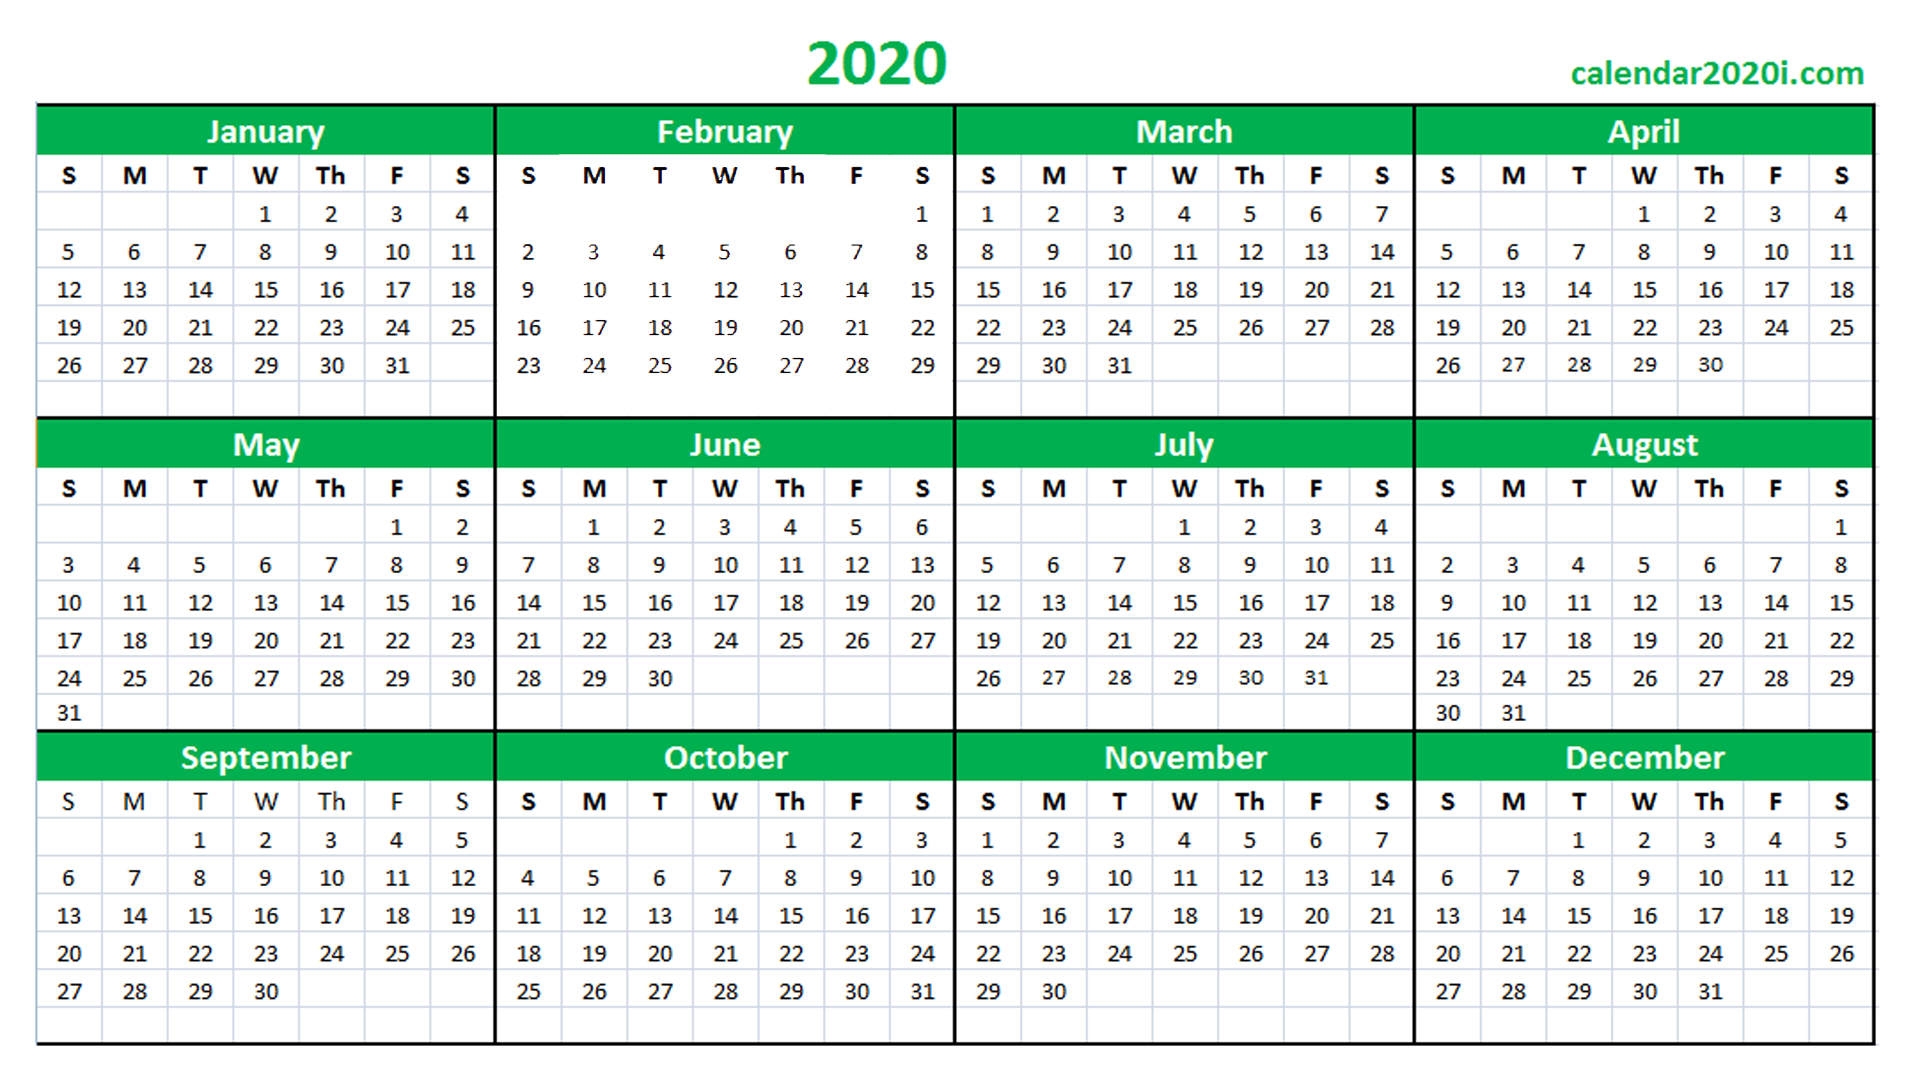 2020 Calendar Printable Template Holidays, Word, Excel 5 Year Schedule Excel